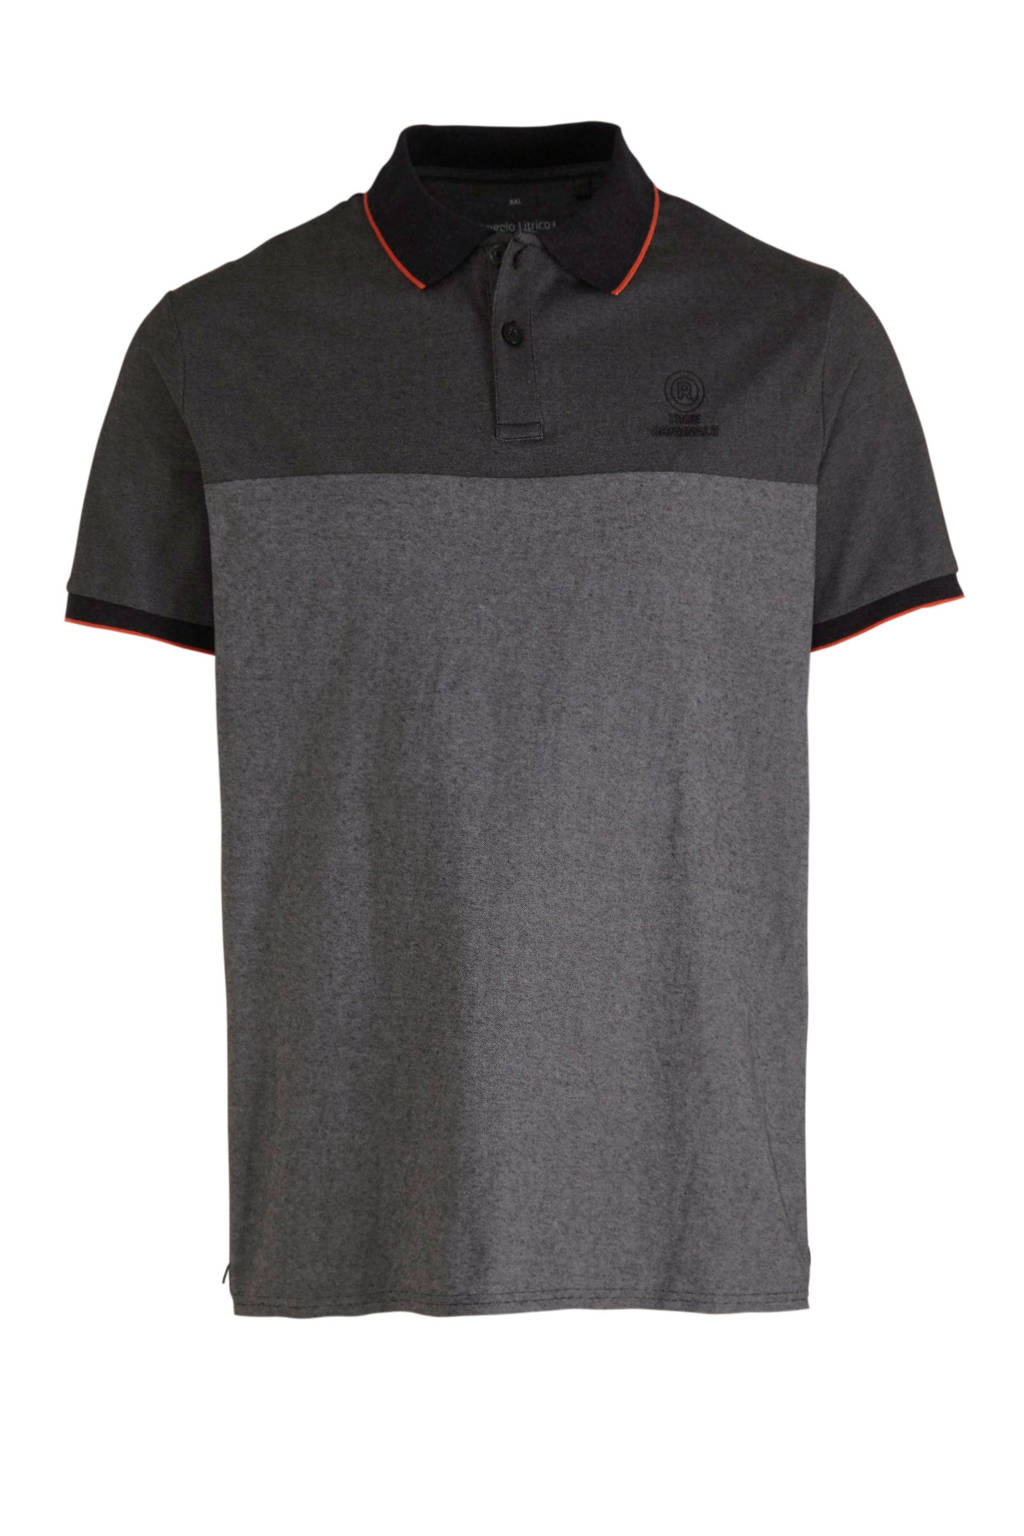 C&A XL Angelo Litrico regular fit polo zwart, Zwart